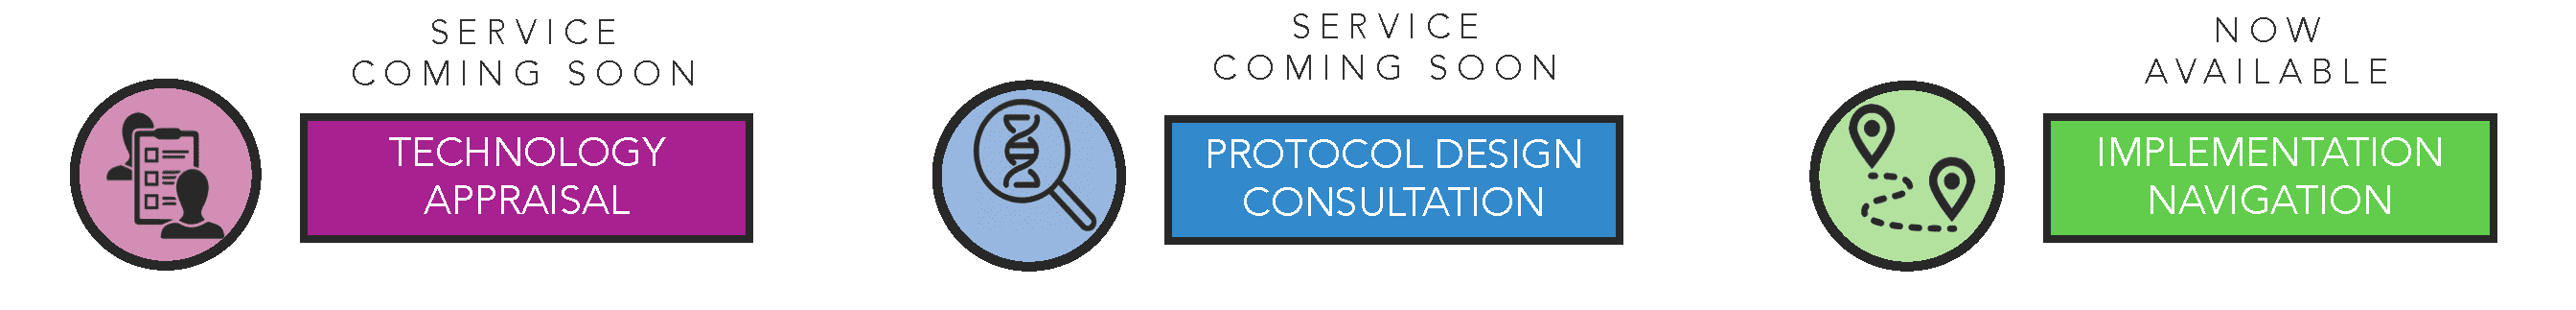 Service coming soon: Technology appraisal; Service coming soon: Protocol design consultation; Now available: Implementation navigation.